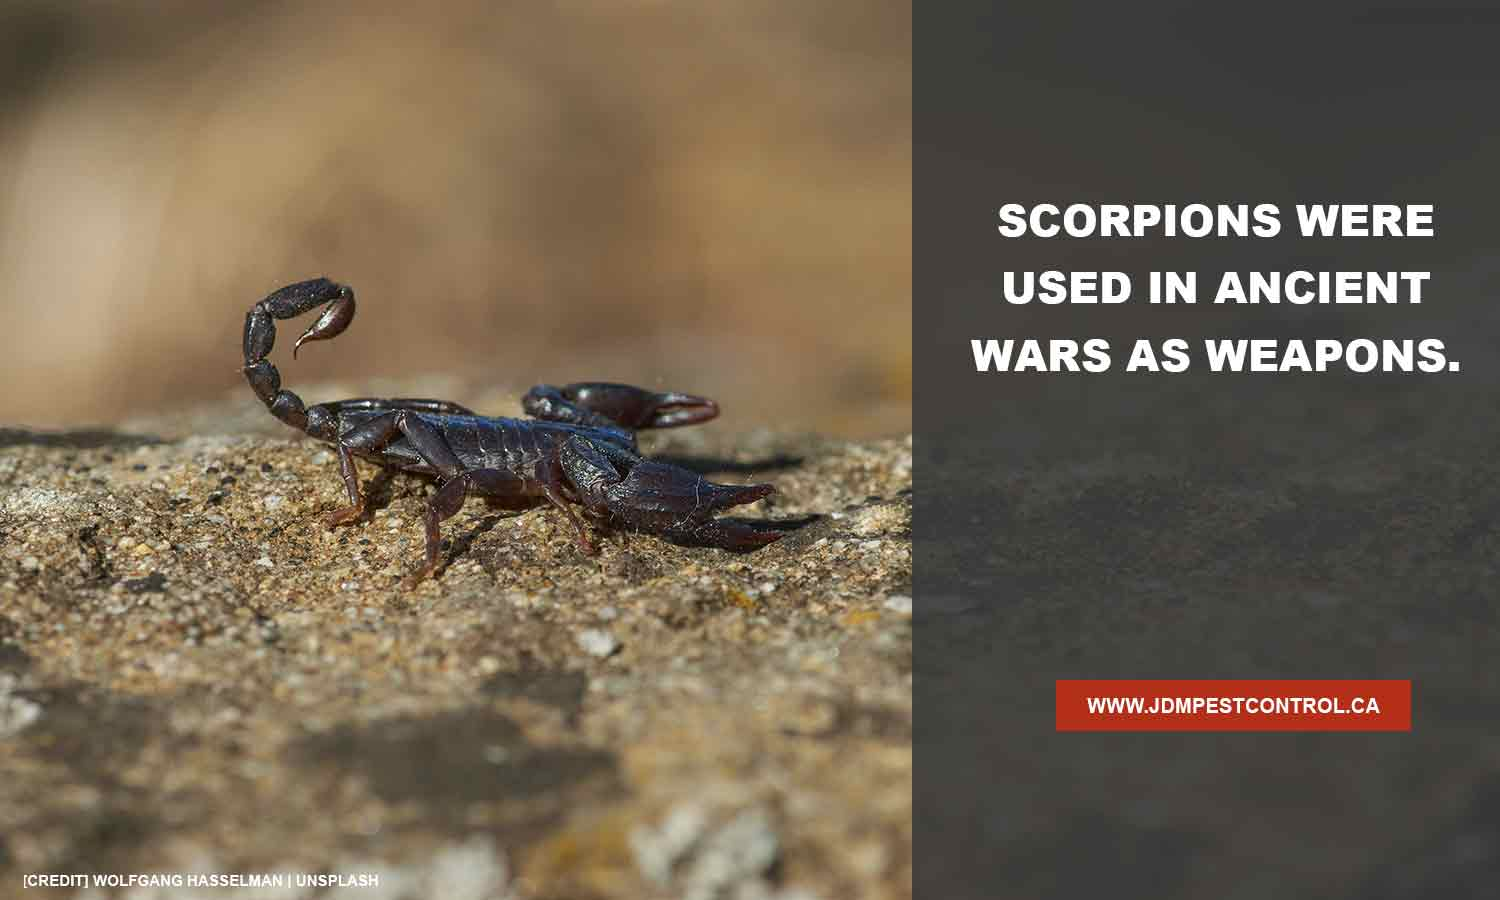 Scorpions were used in ancient wars as weapons.